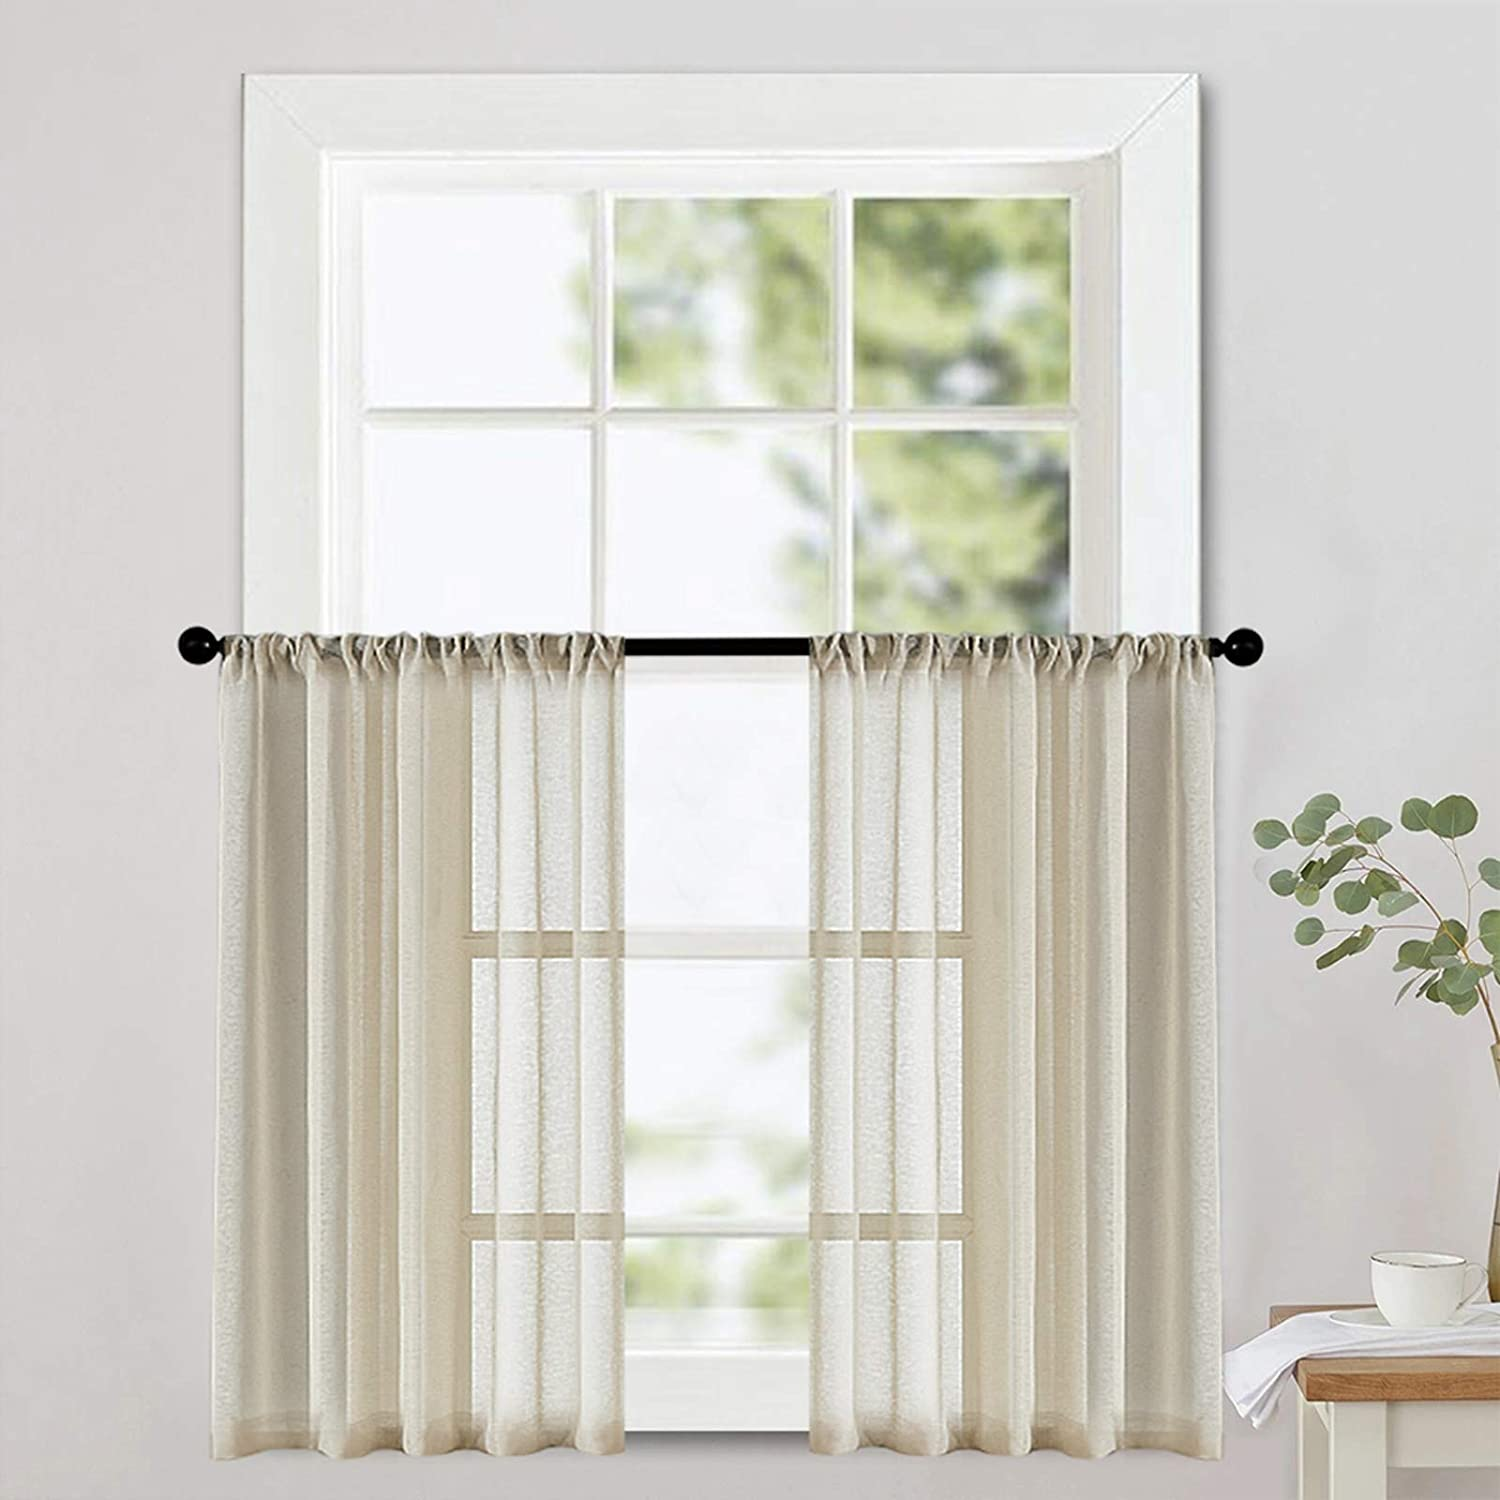 Semi Sheer Tier Curtains Beige Kitchen Tiers 24 inches Long Privacy Cafe Curtains Small Short Bathroom Half Window Curtains Basement 2 Panels Pole Top